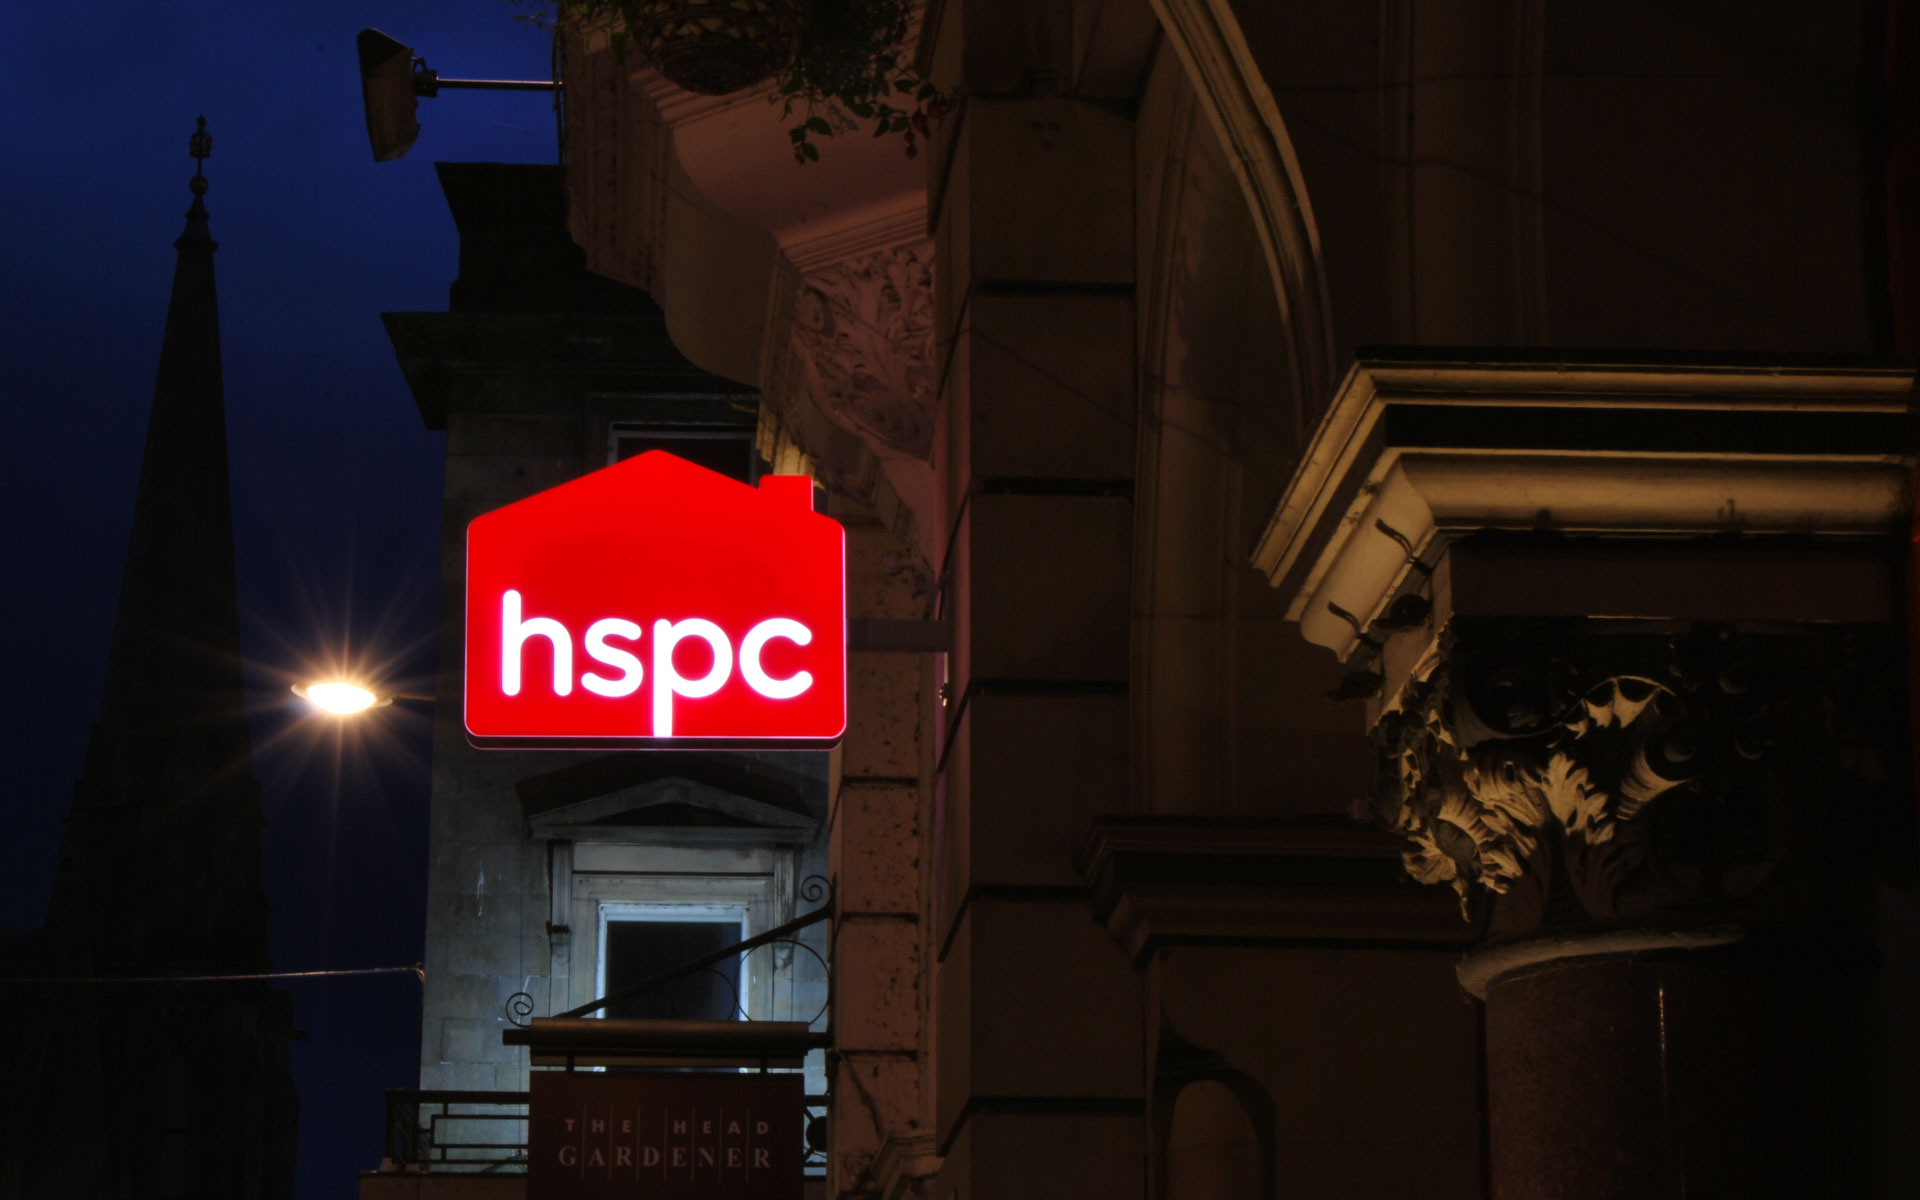 hspc sign lit up